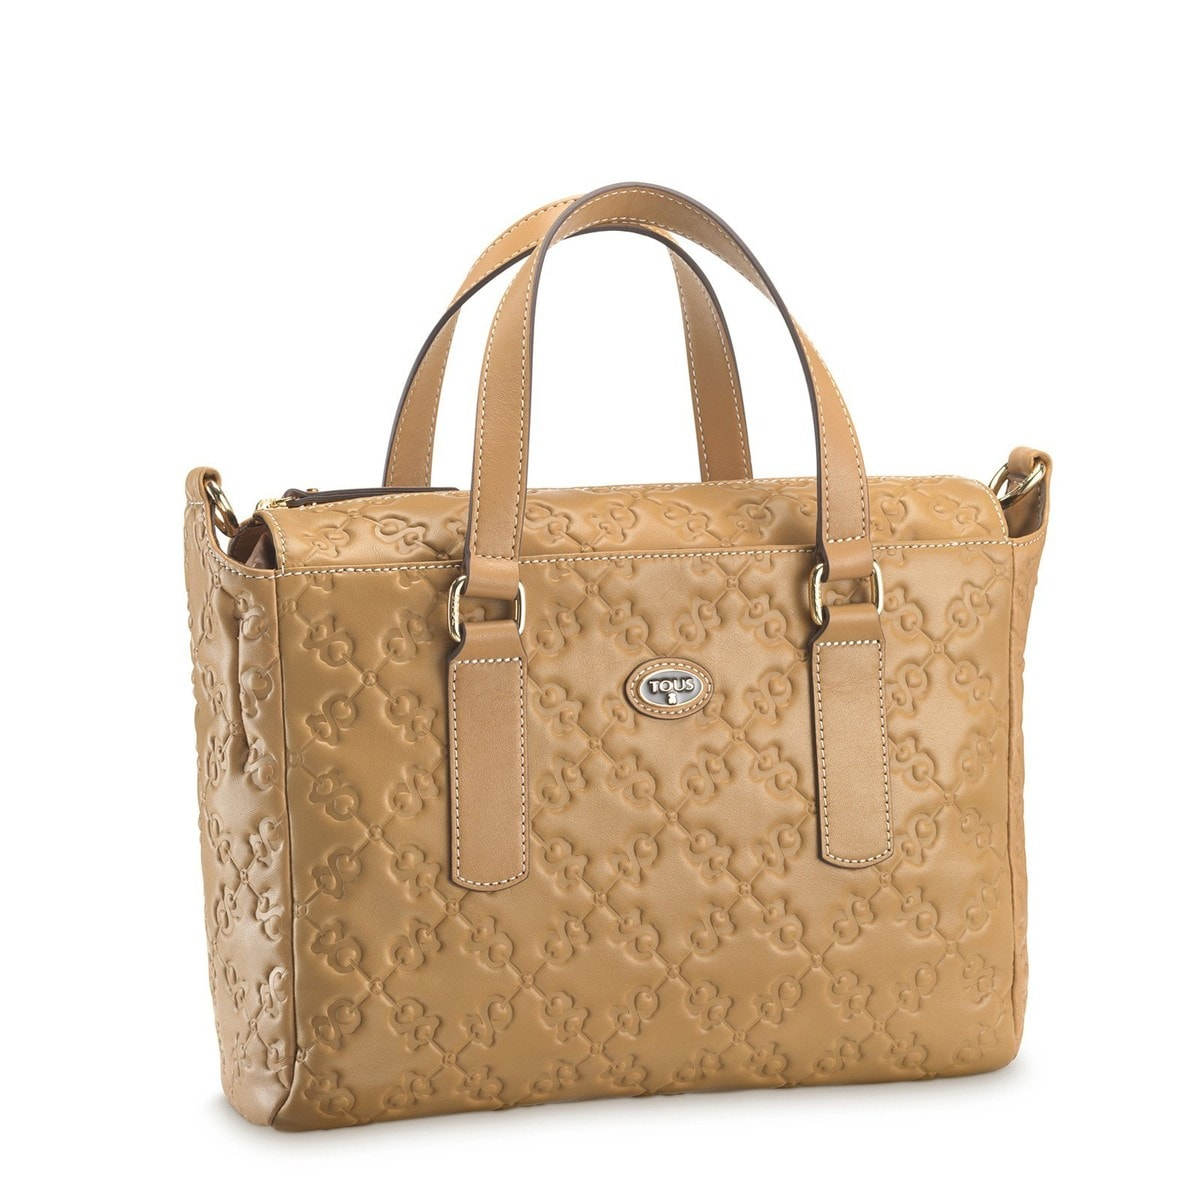 Camel colored Leather Infinit Tote bag